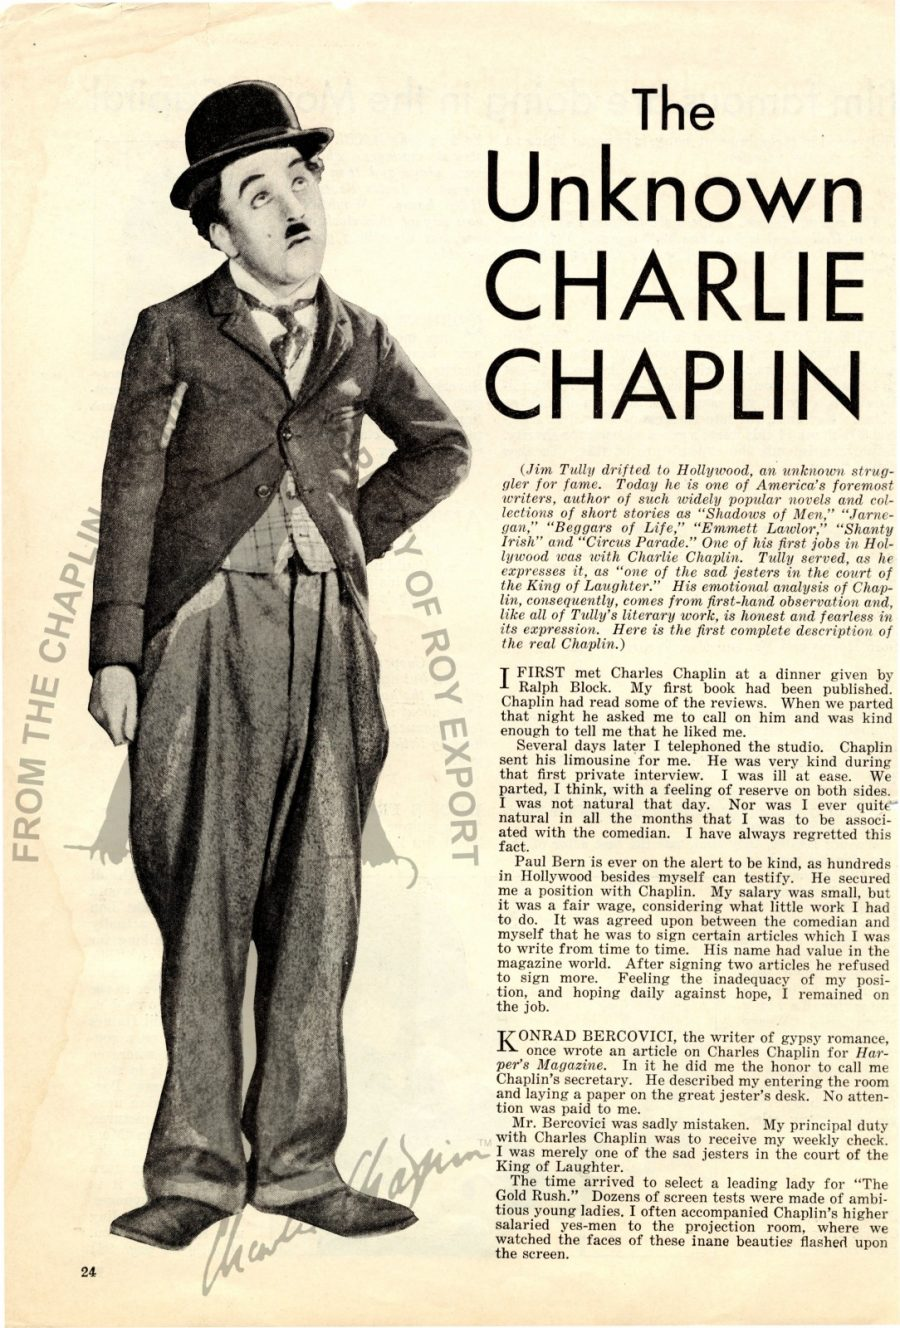 The Charlie Chaplin Archive Opens Putting Online 30000